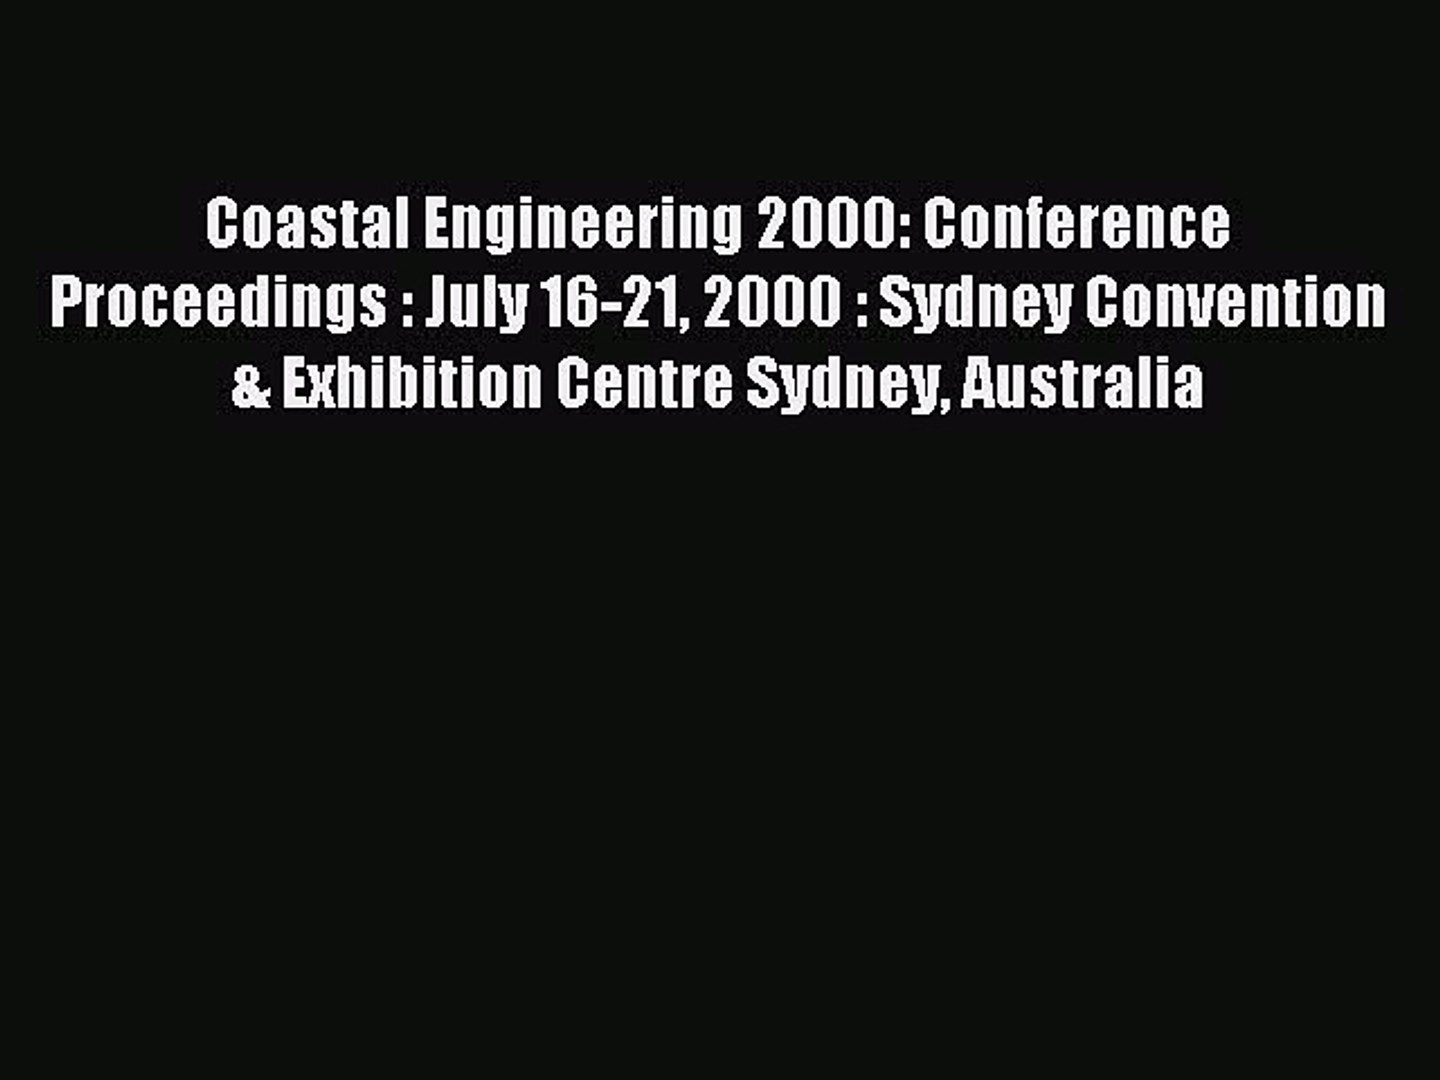 Download Coastal Engineering 2000: Conference Proceedings : July 16-21 2000 : Sydney Convention